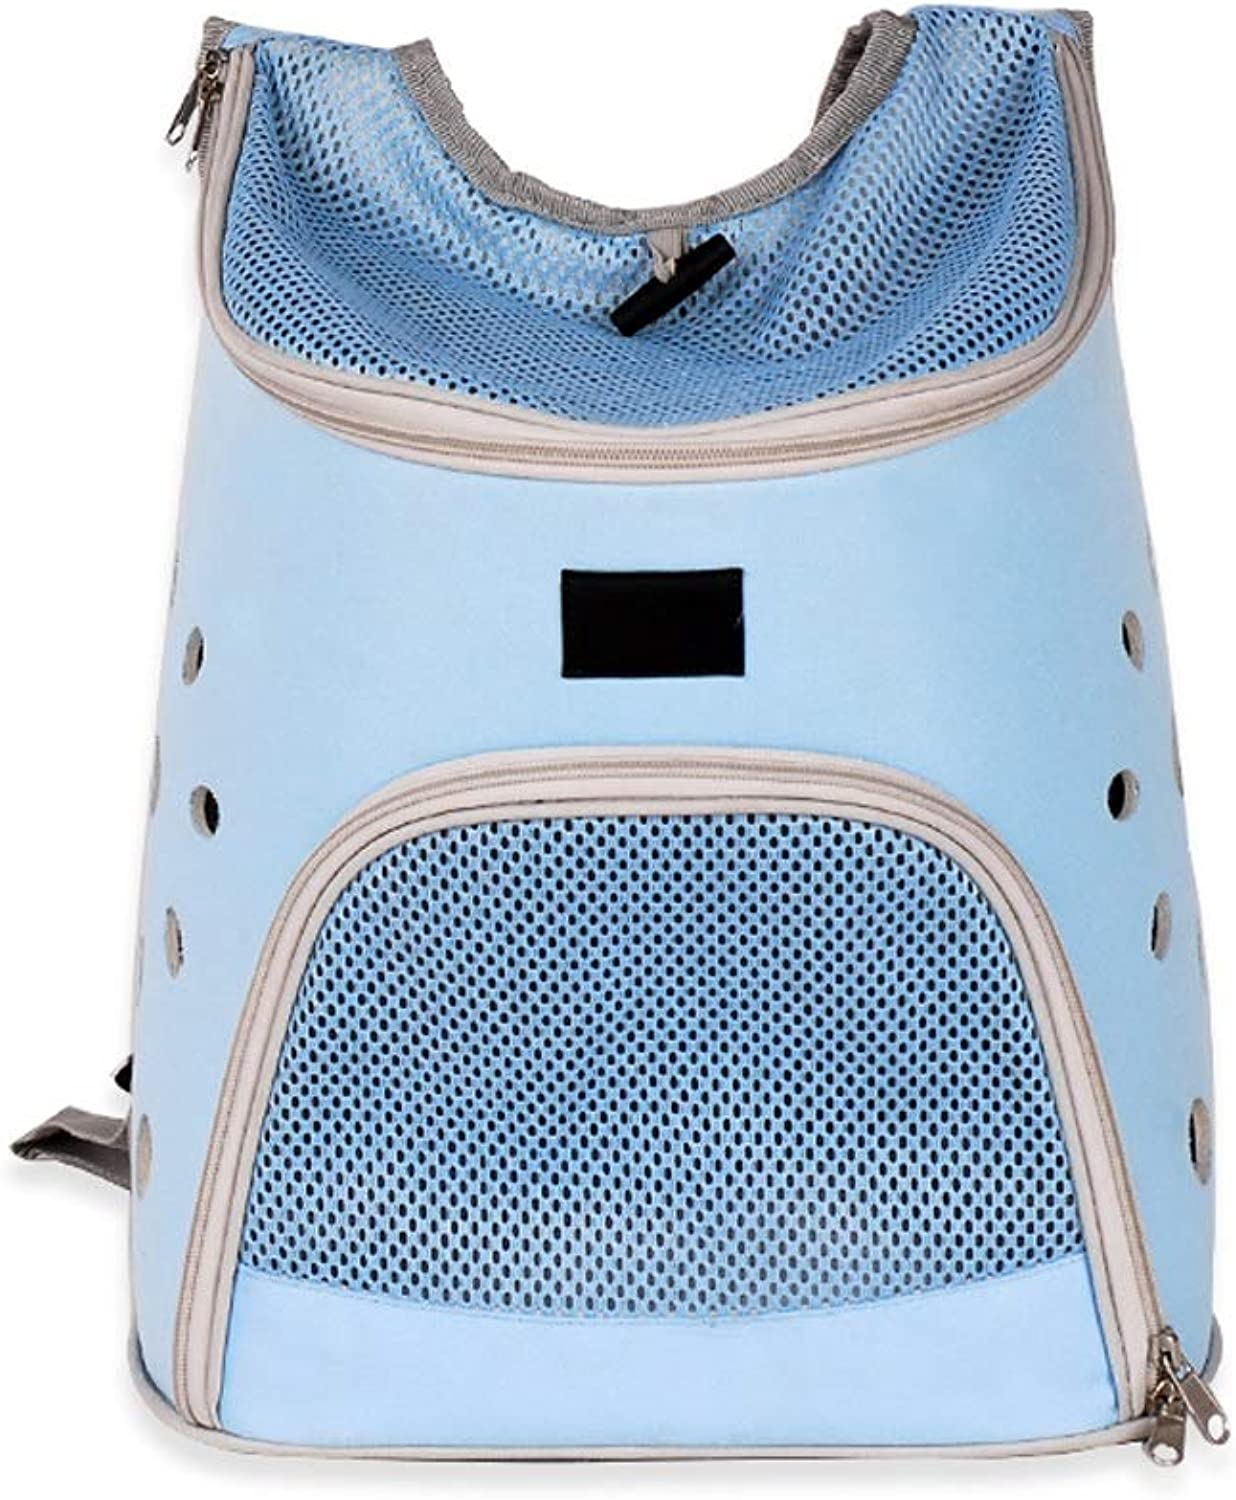 JIANXIN Pet Backpack, Pet Cage, Portable Pet Bag, Pet Out Backpack, Cat And Dog Backpack, Breathable And Bite Resistant (color   bluee)